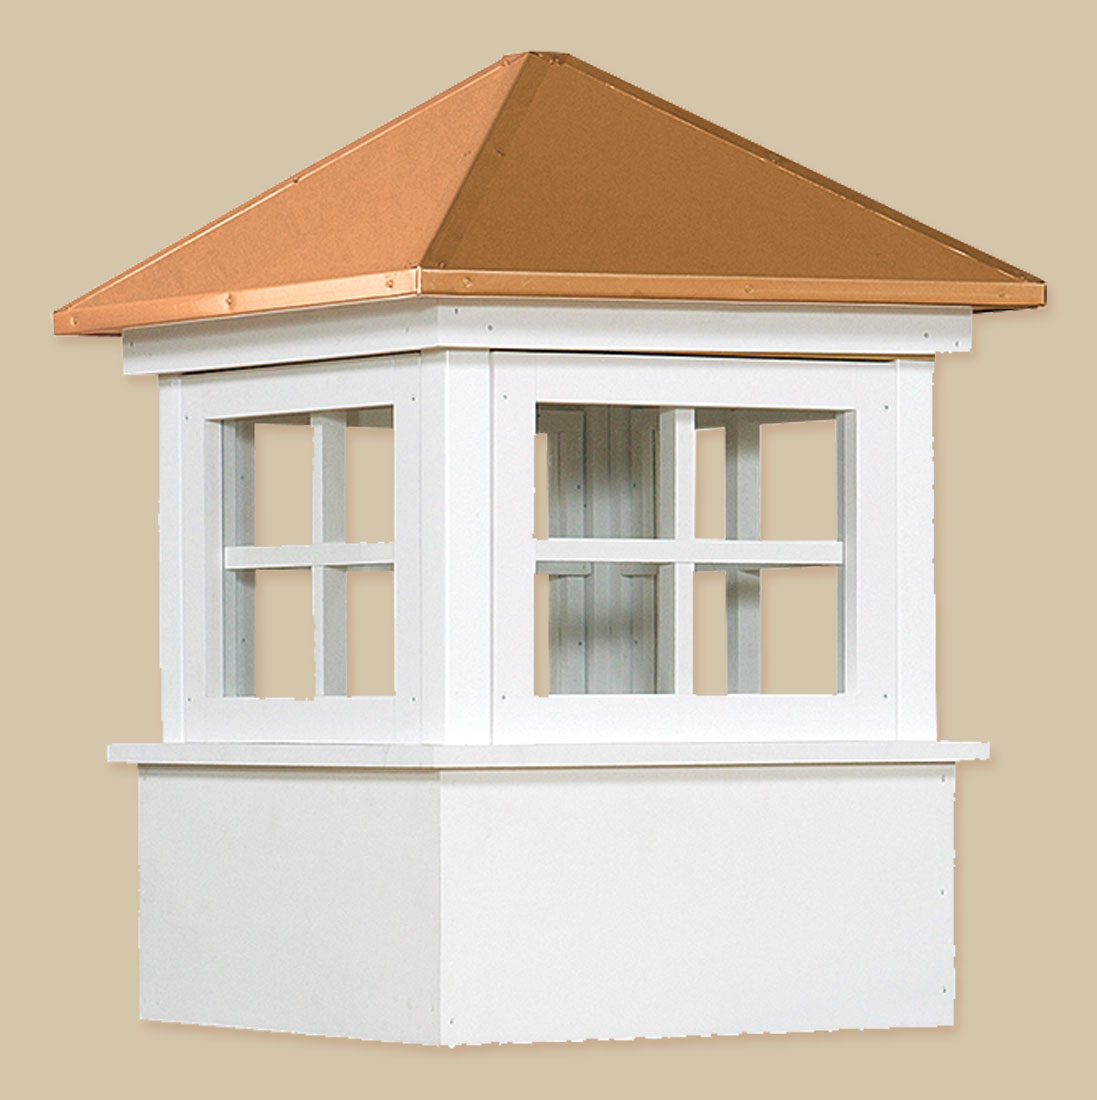 Select cupolas backyard beyond for Cupola for shed